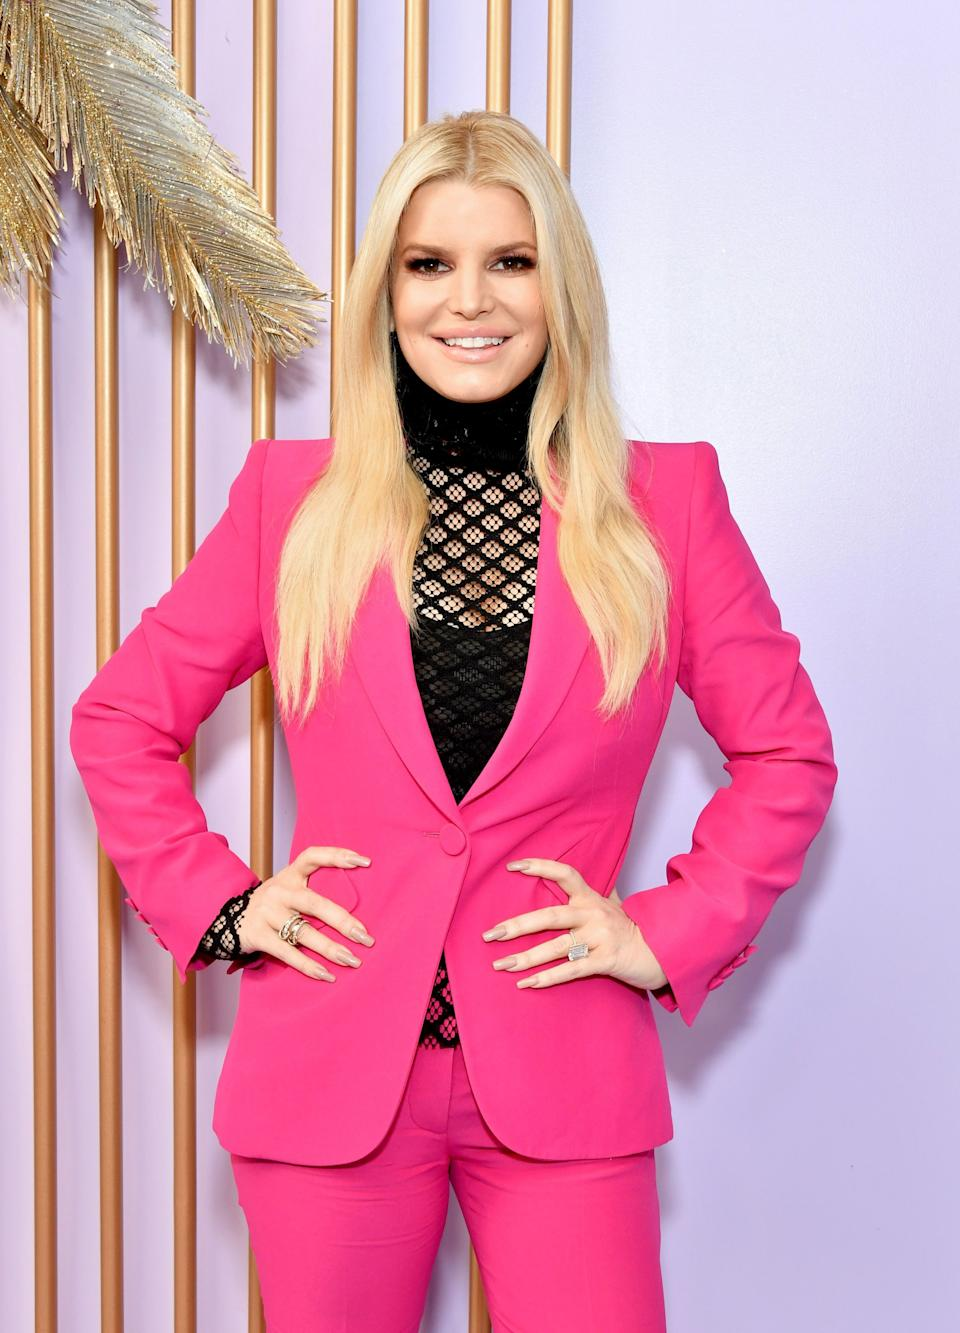 Fans are alleging Jessica Simpson has had dermal fillers after the star shared a new family photo over the Easter weekend. (Photo by Amy Sussman/Getty Images)